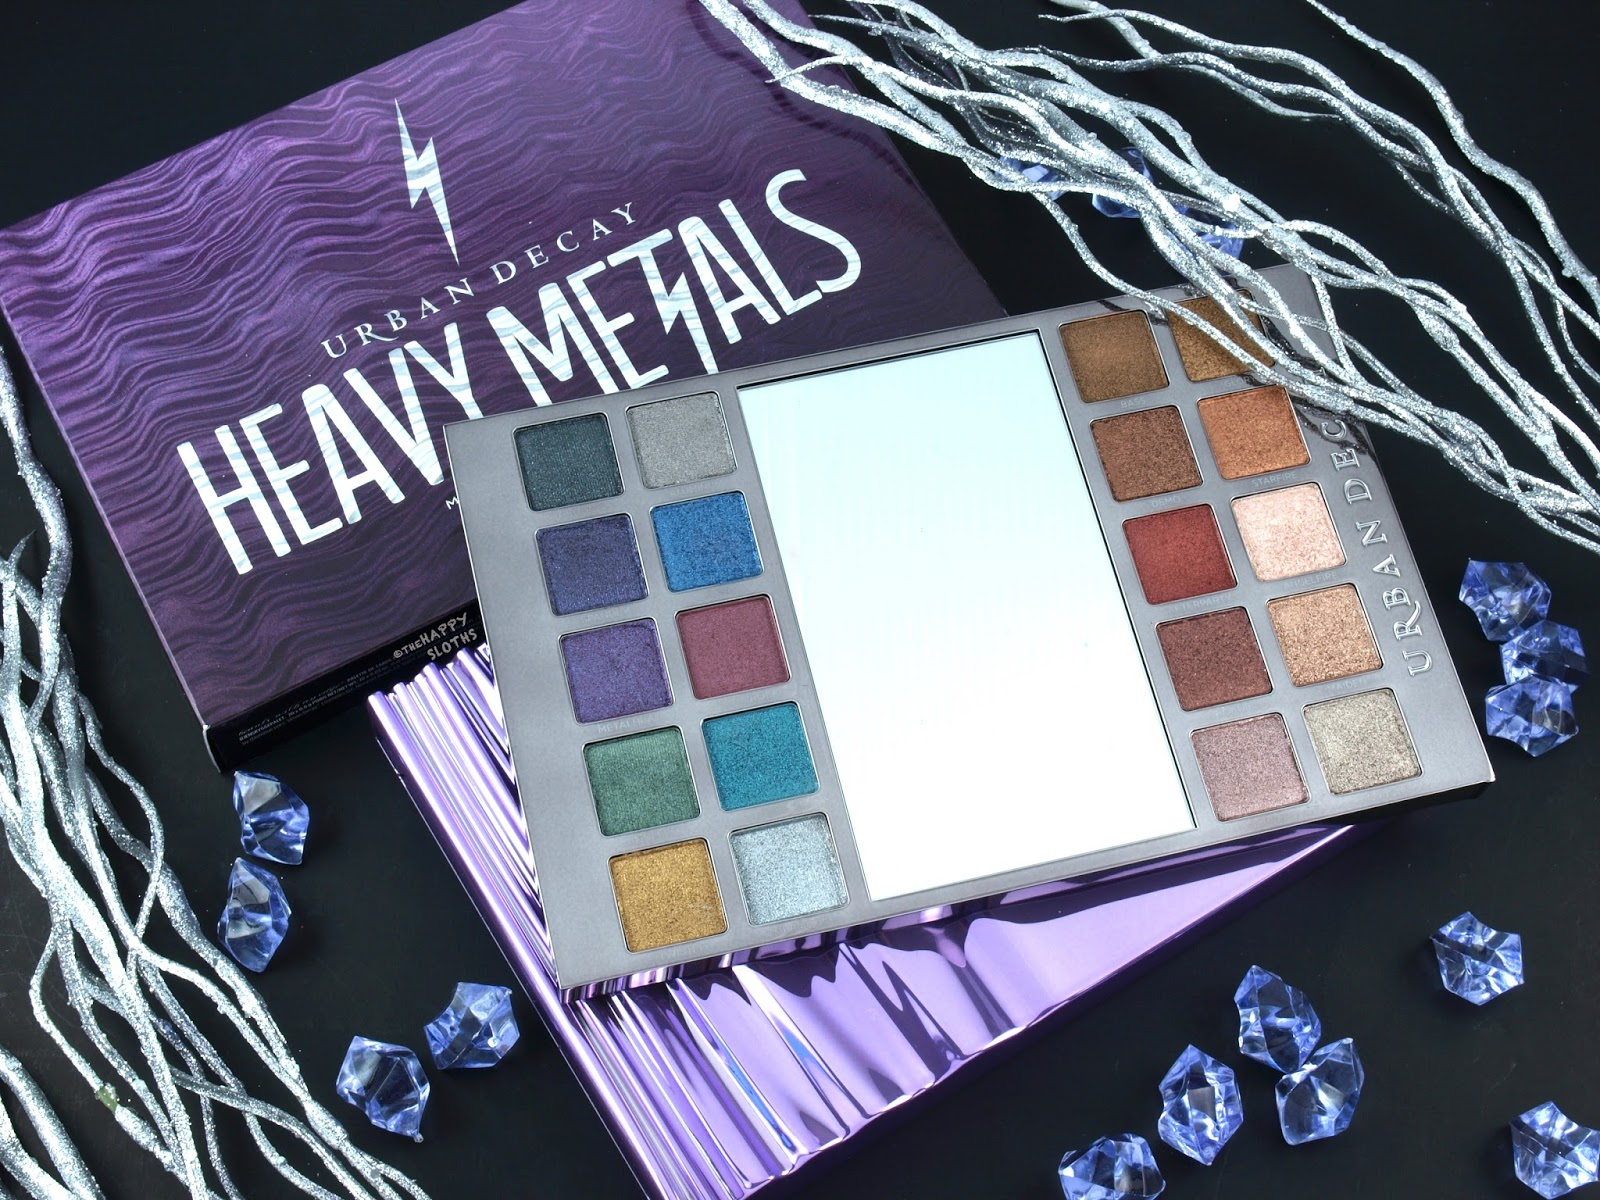 urban-decay-heavy-metals-palette-review-swatches-1